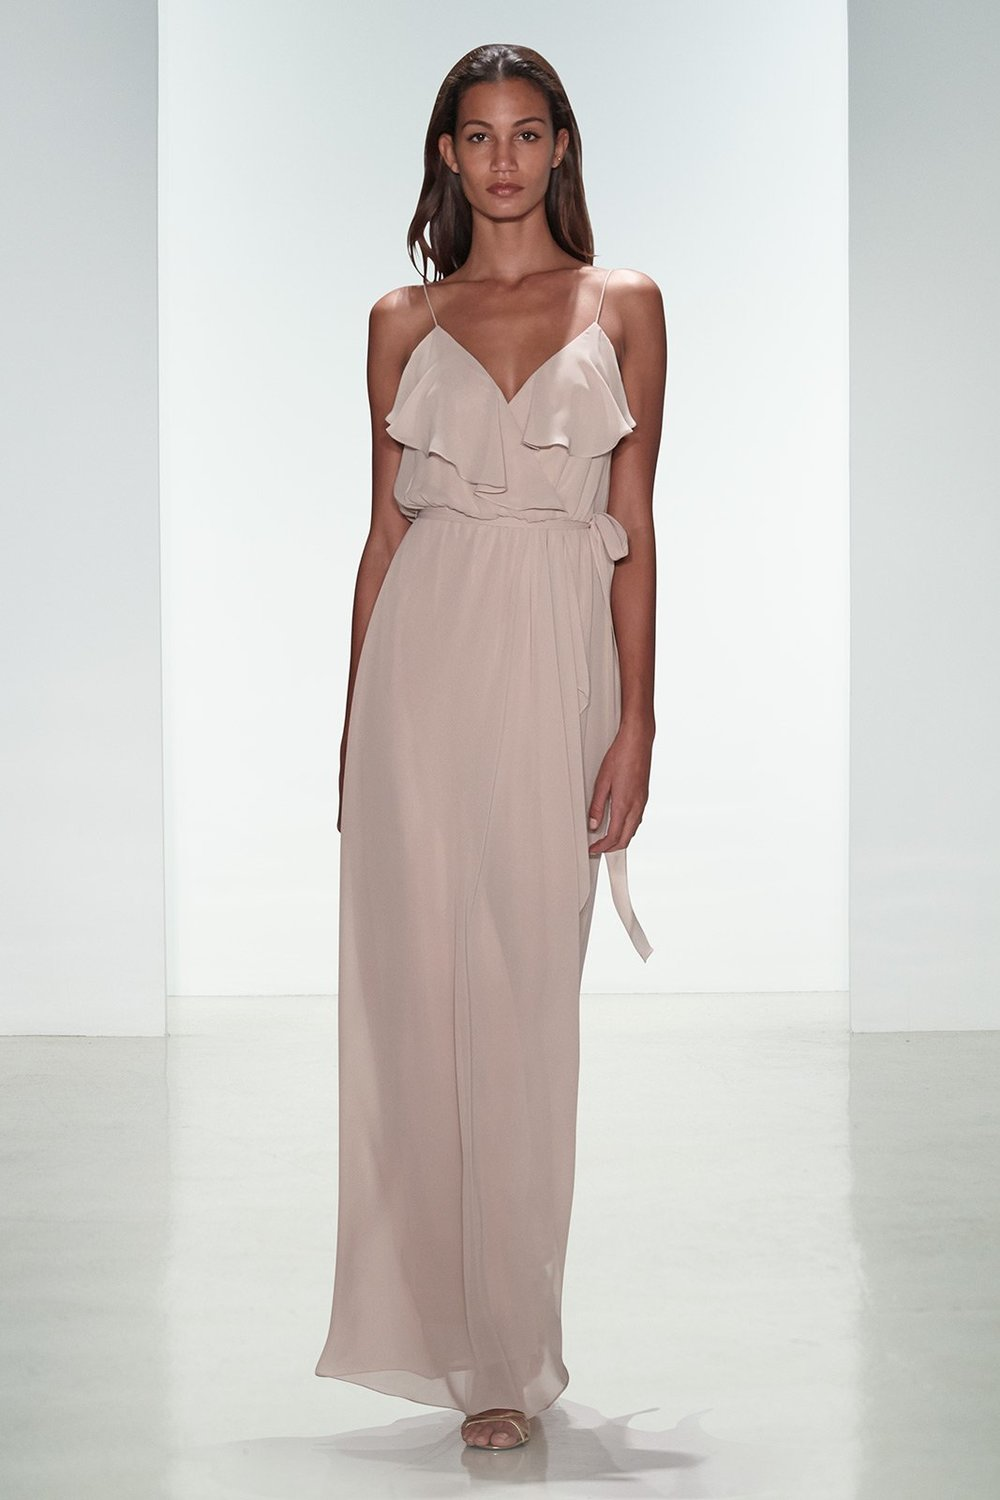 Drew by Amsale Nouvelle in bellini chiffon with boho ruffle details